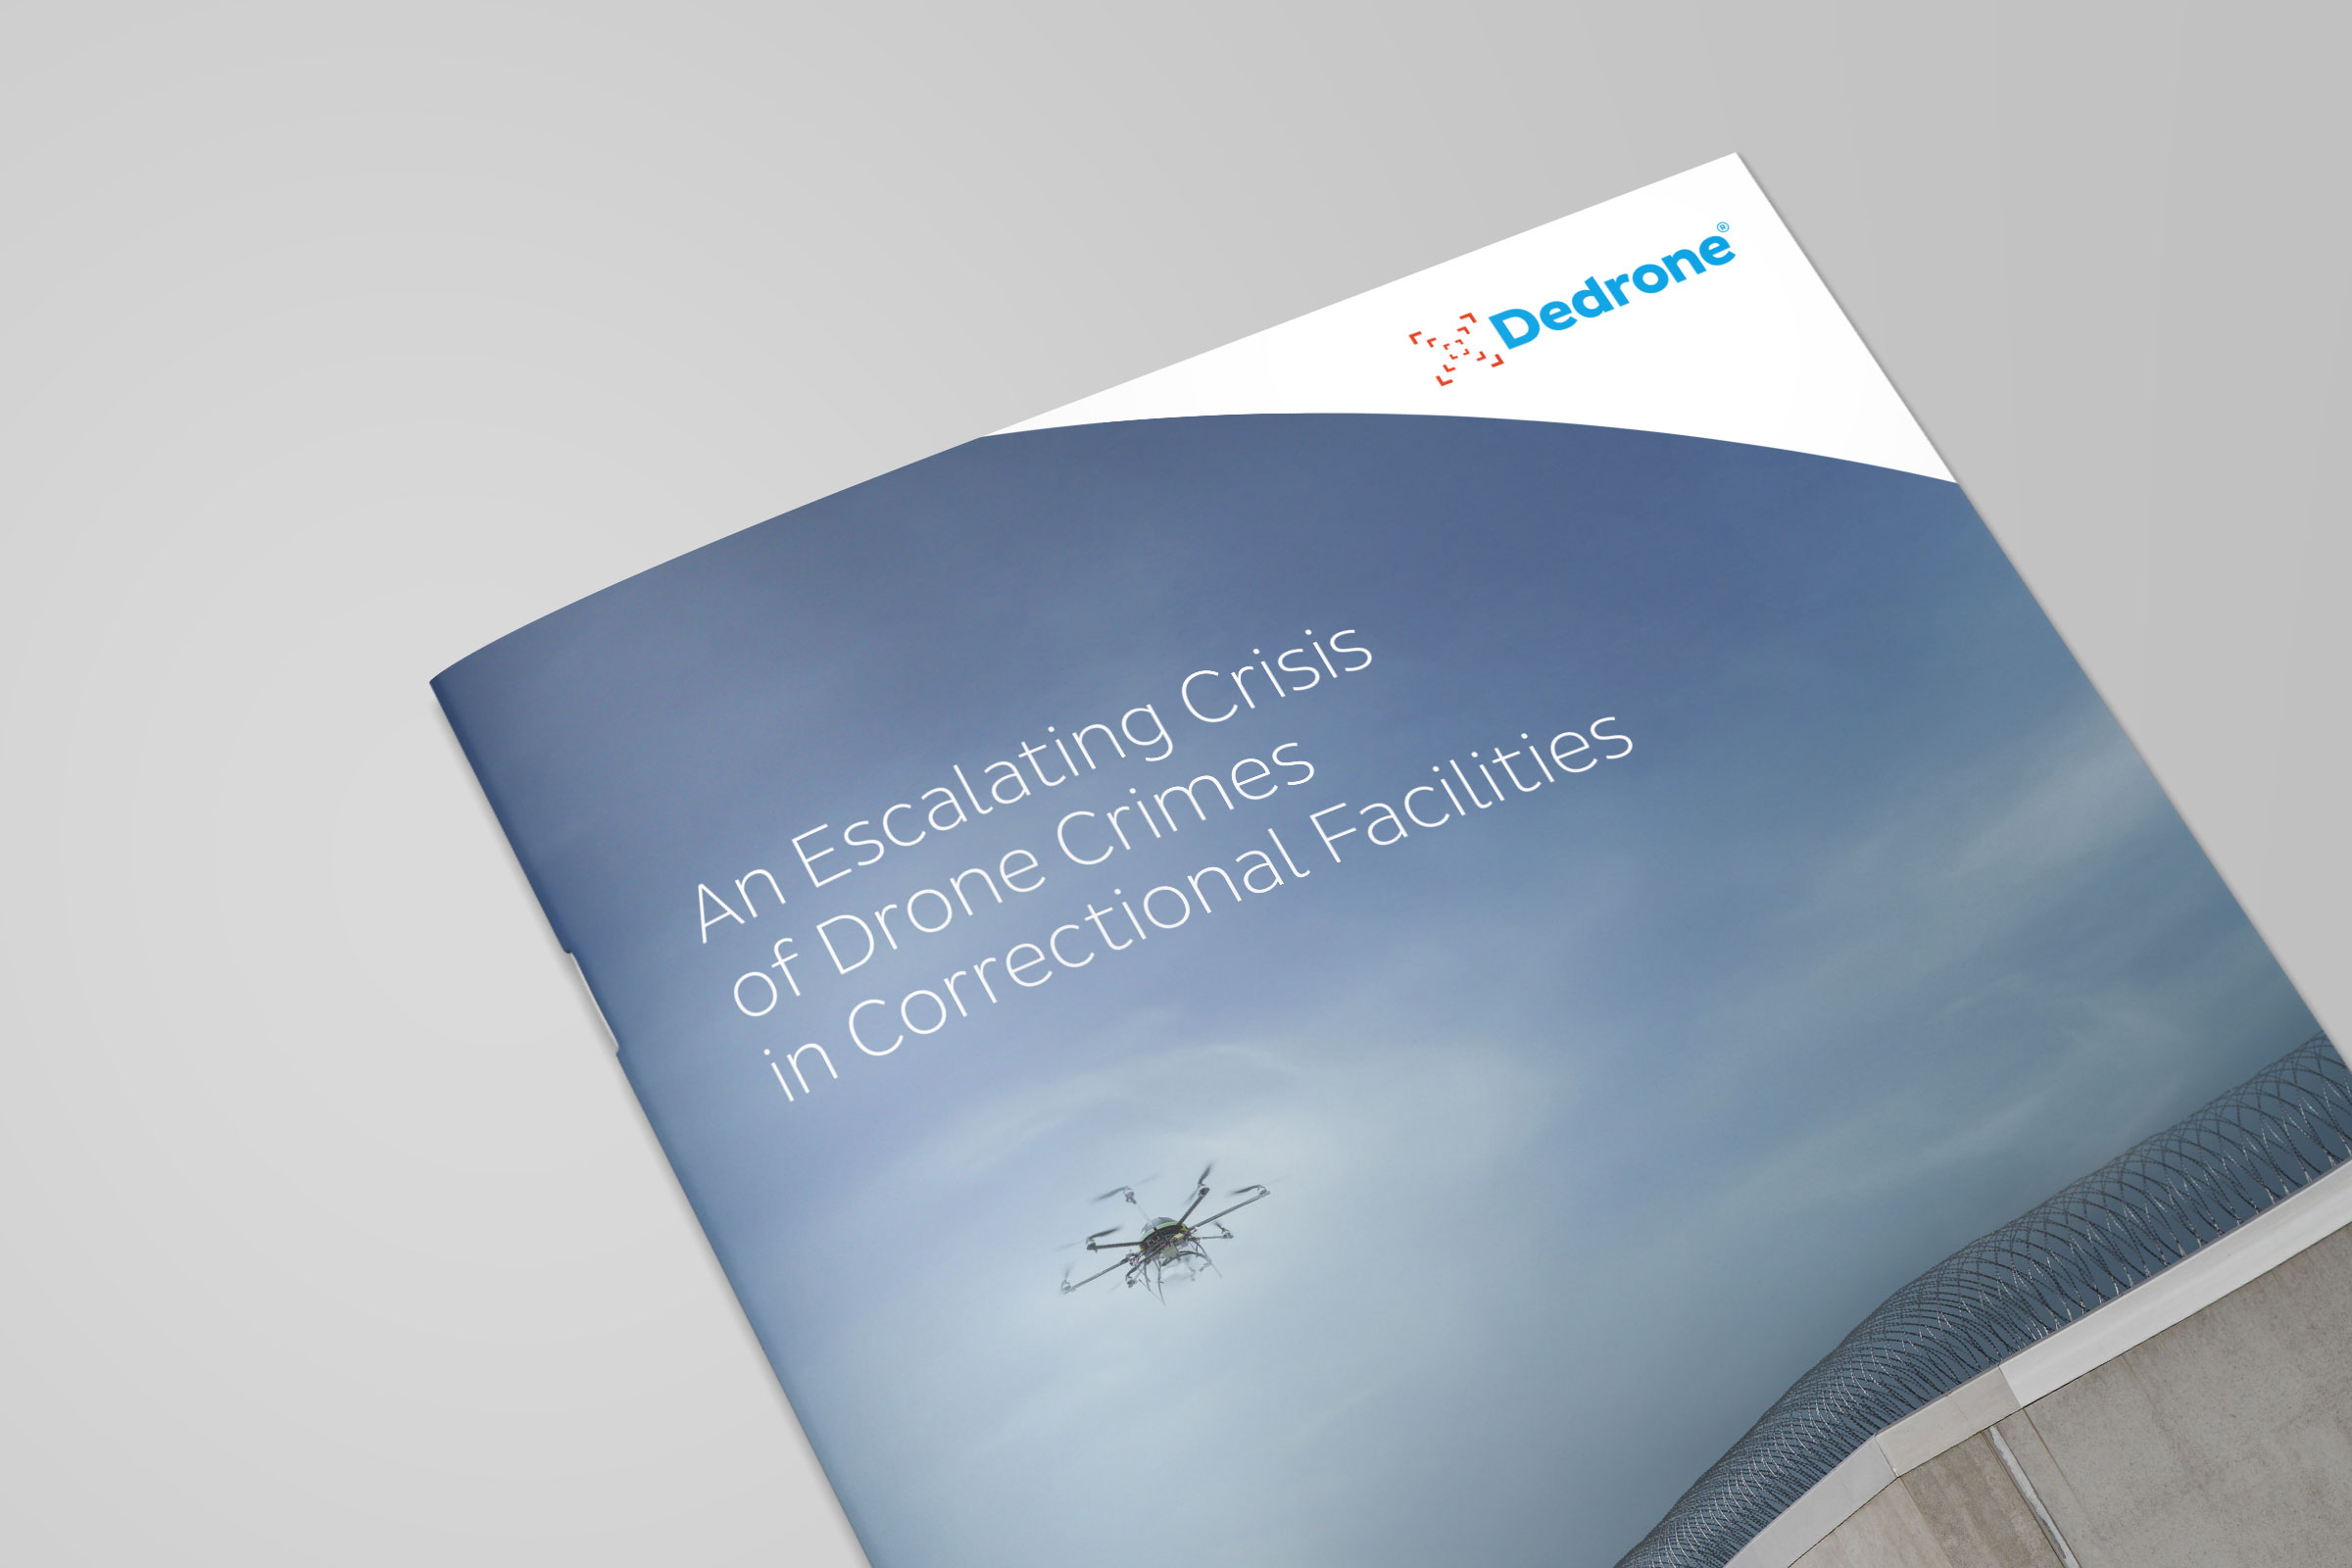 dedrone-whitepaper-cover-big-corrections-crisis